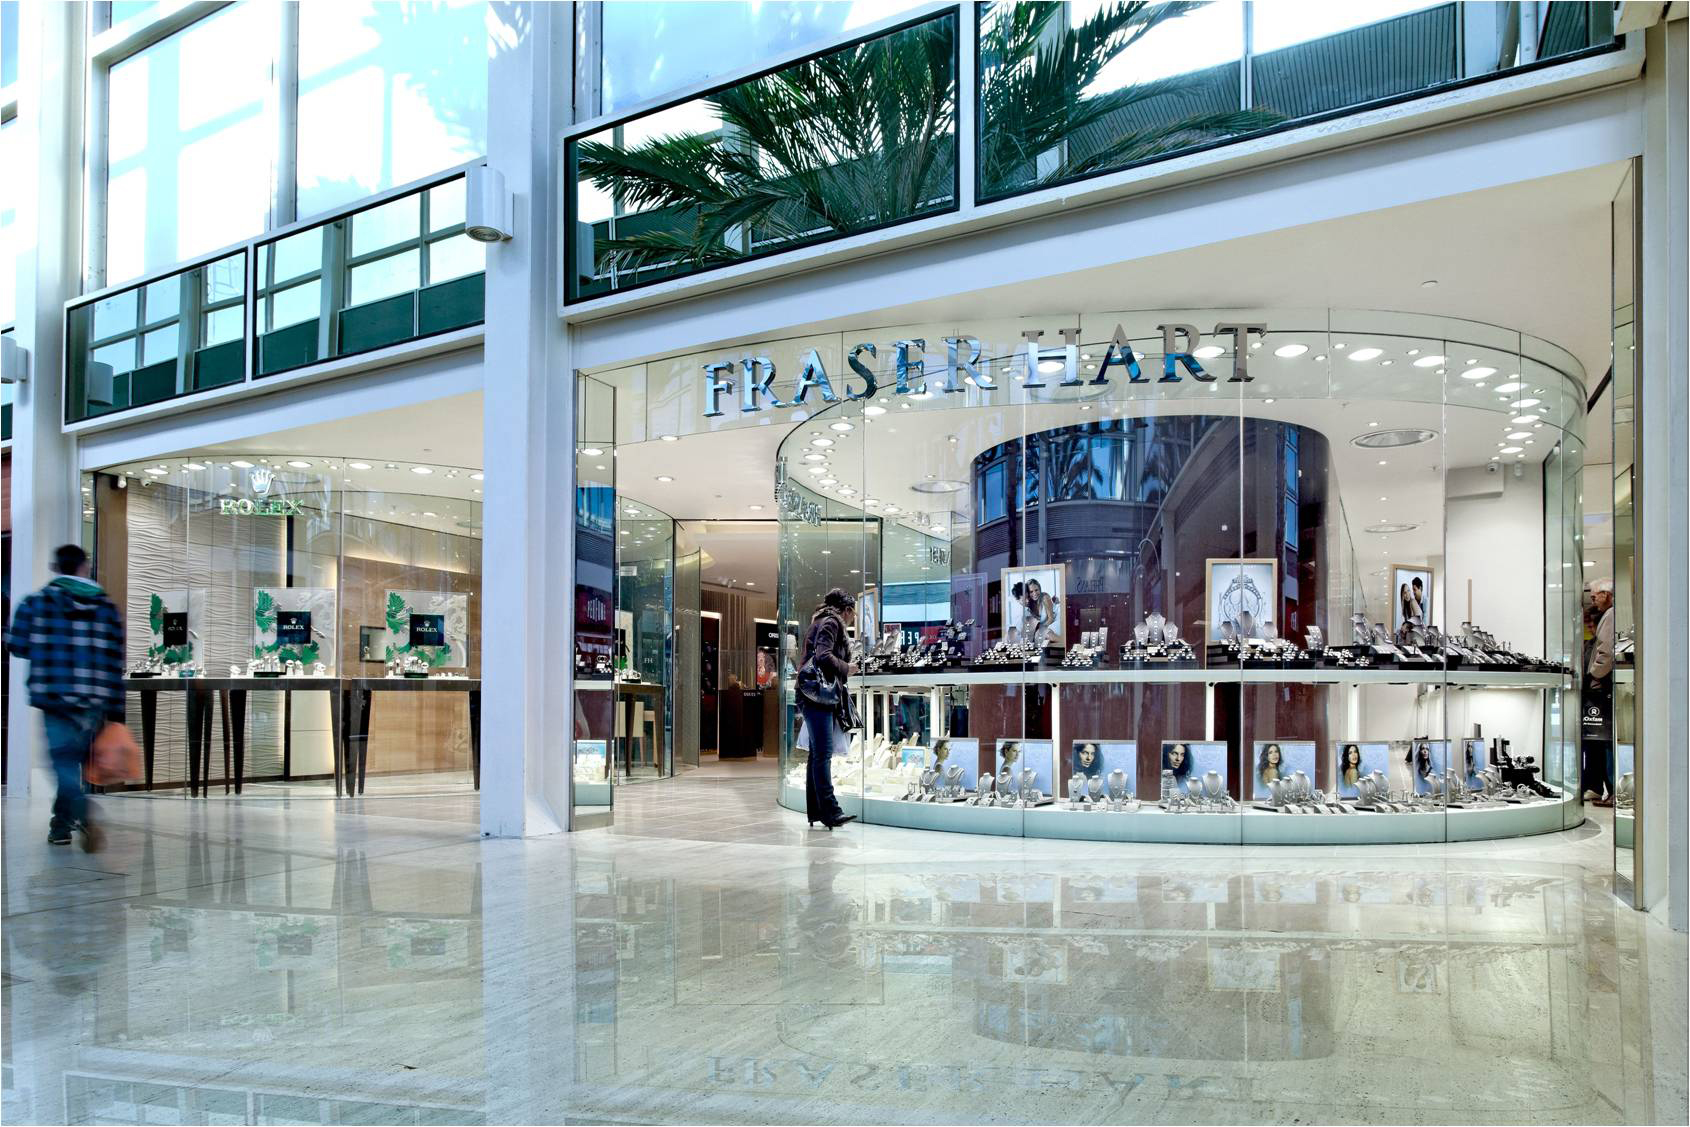 Fraser Hart stores like this one in Milton Keynes MK Centre, draw customers into the store and give more space to fewer watch and jewellery brands.